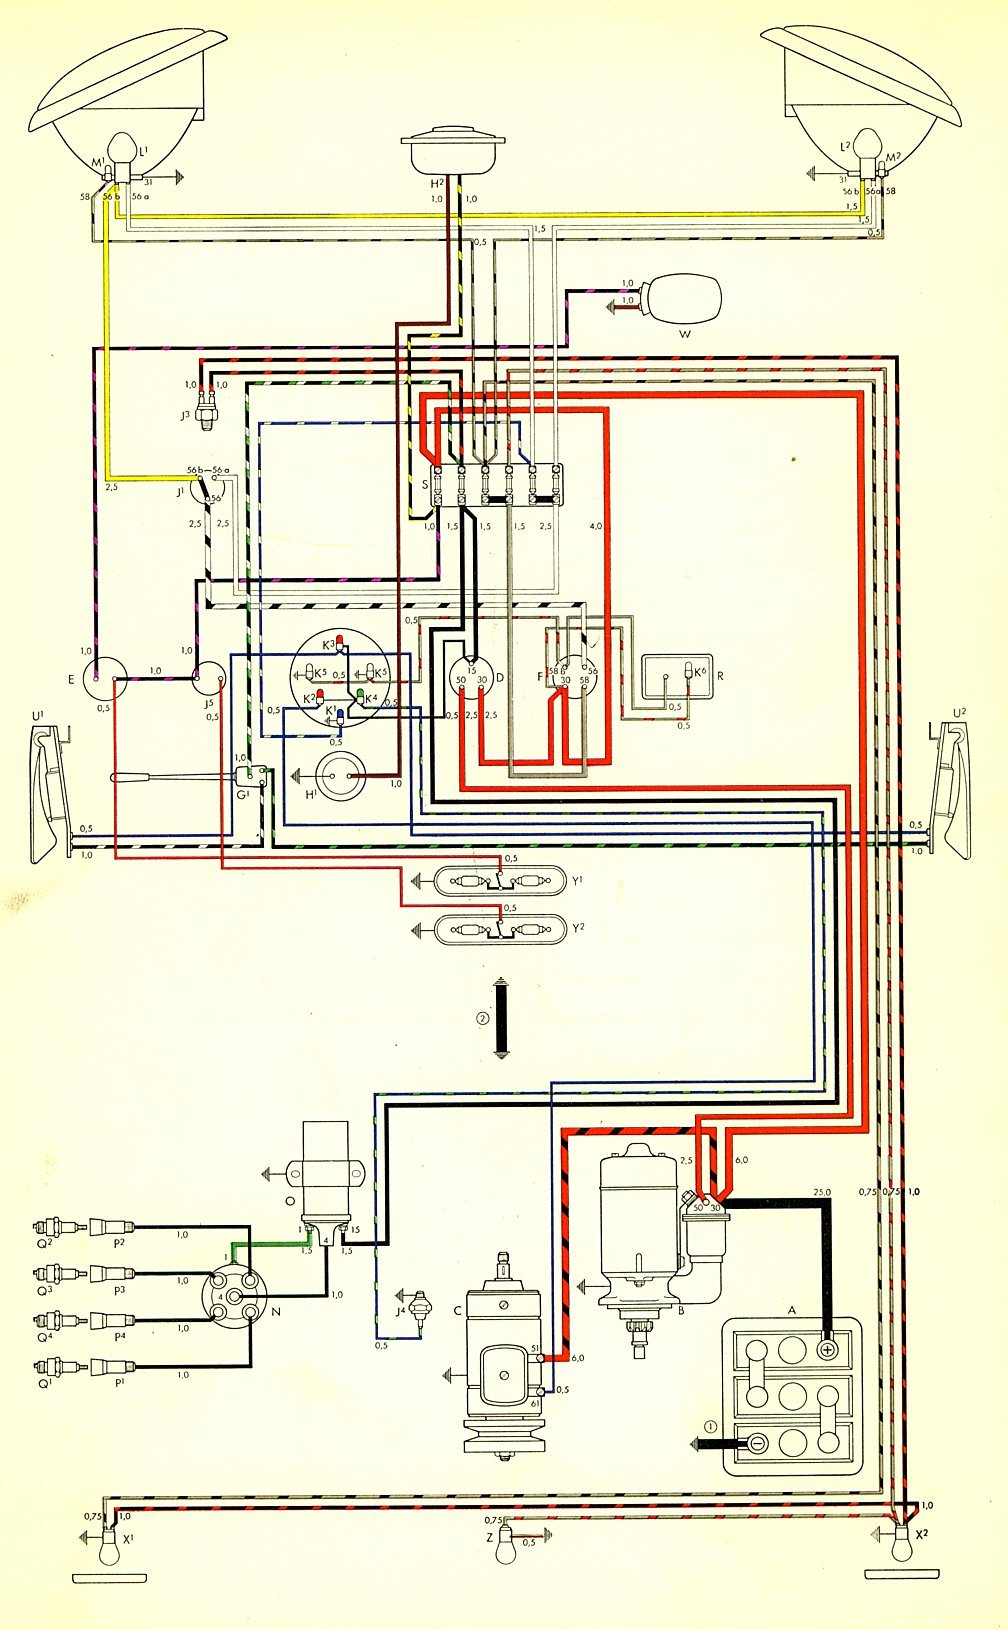 bus_59 thesamba com type 2 wiring diagrams find wiring diagram for 87 ford f 150 at gsmportal.co